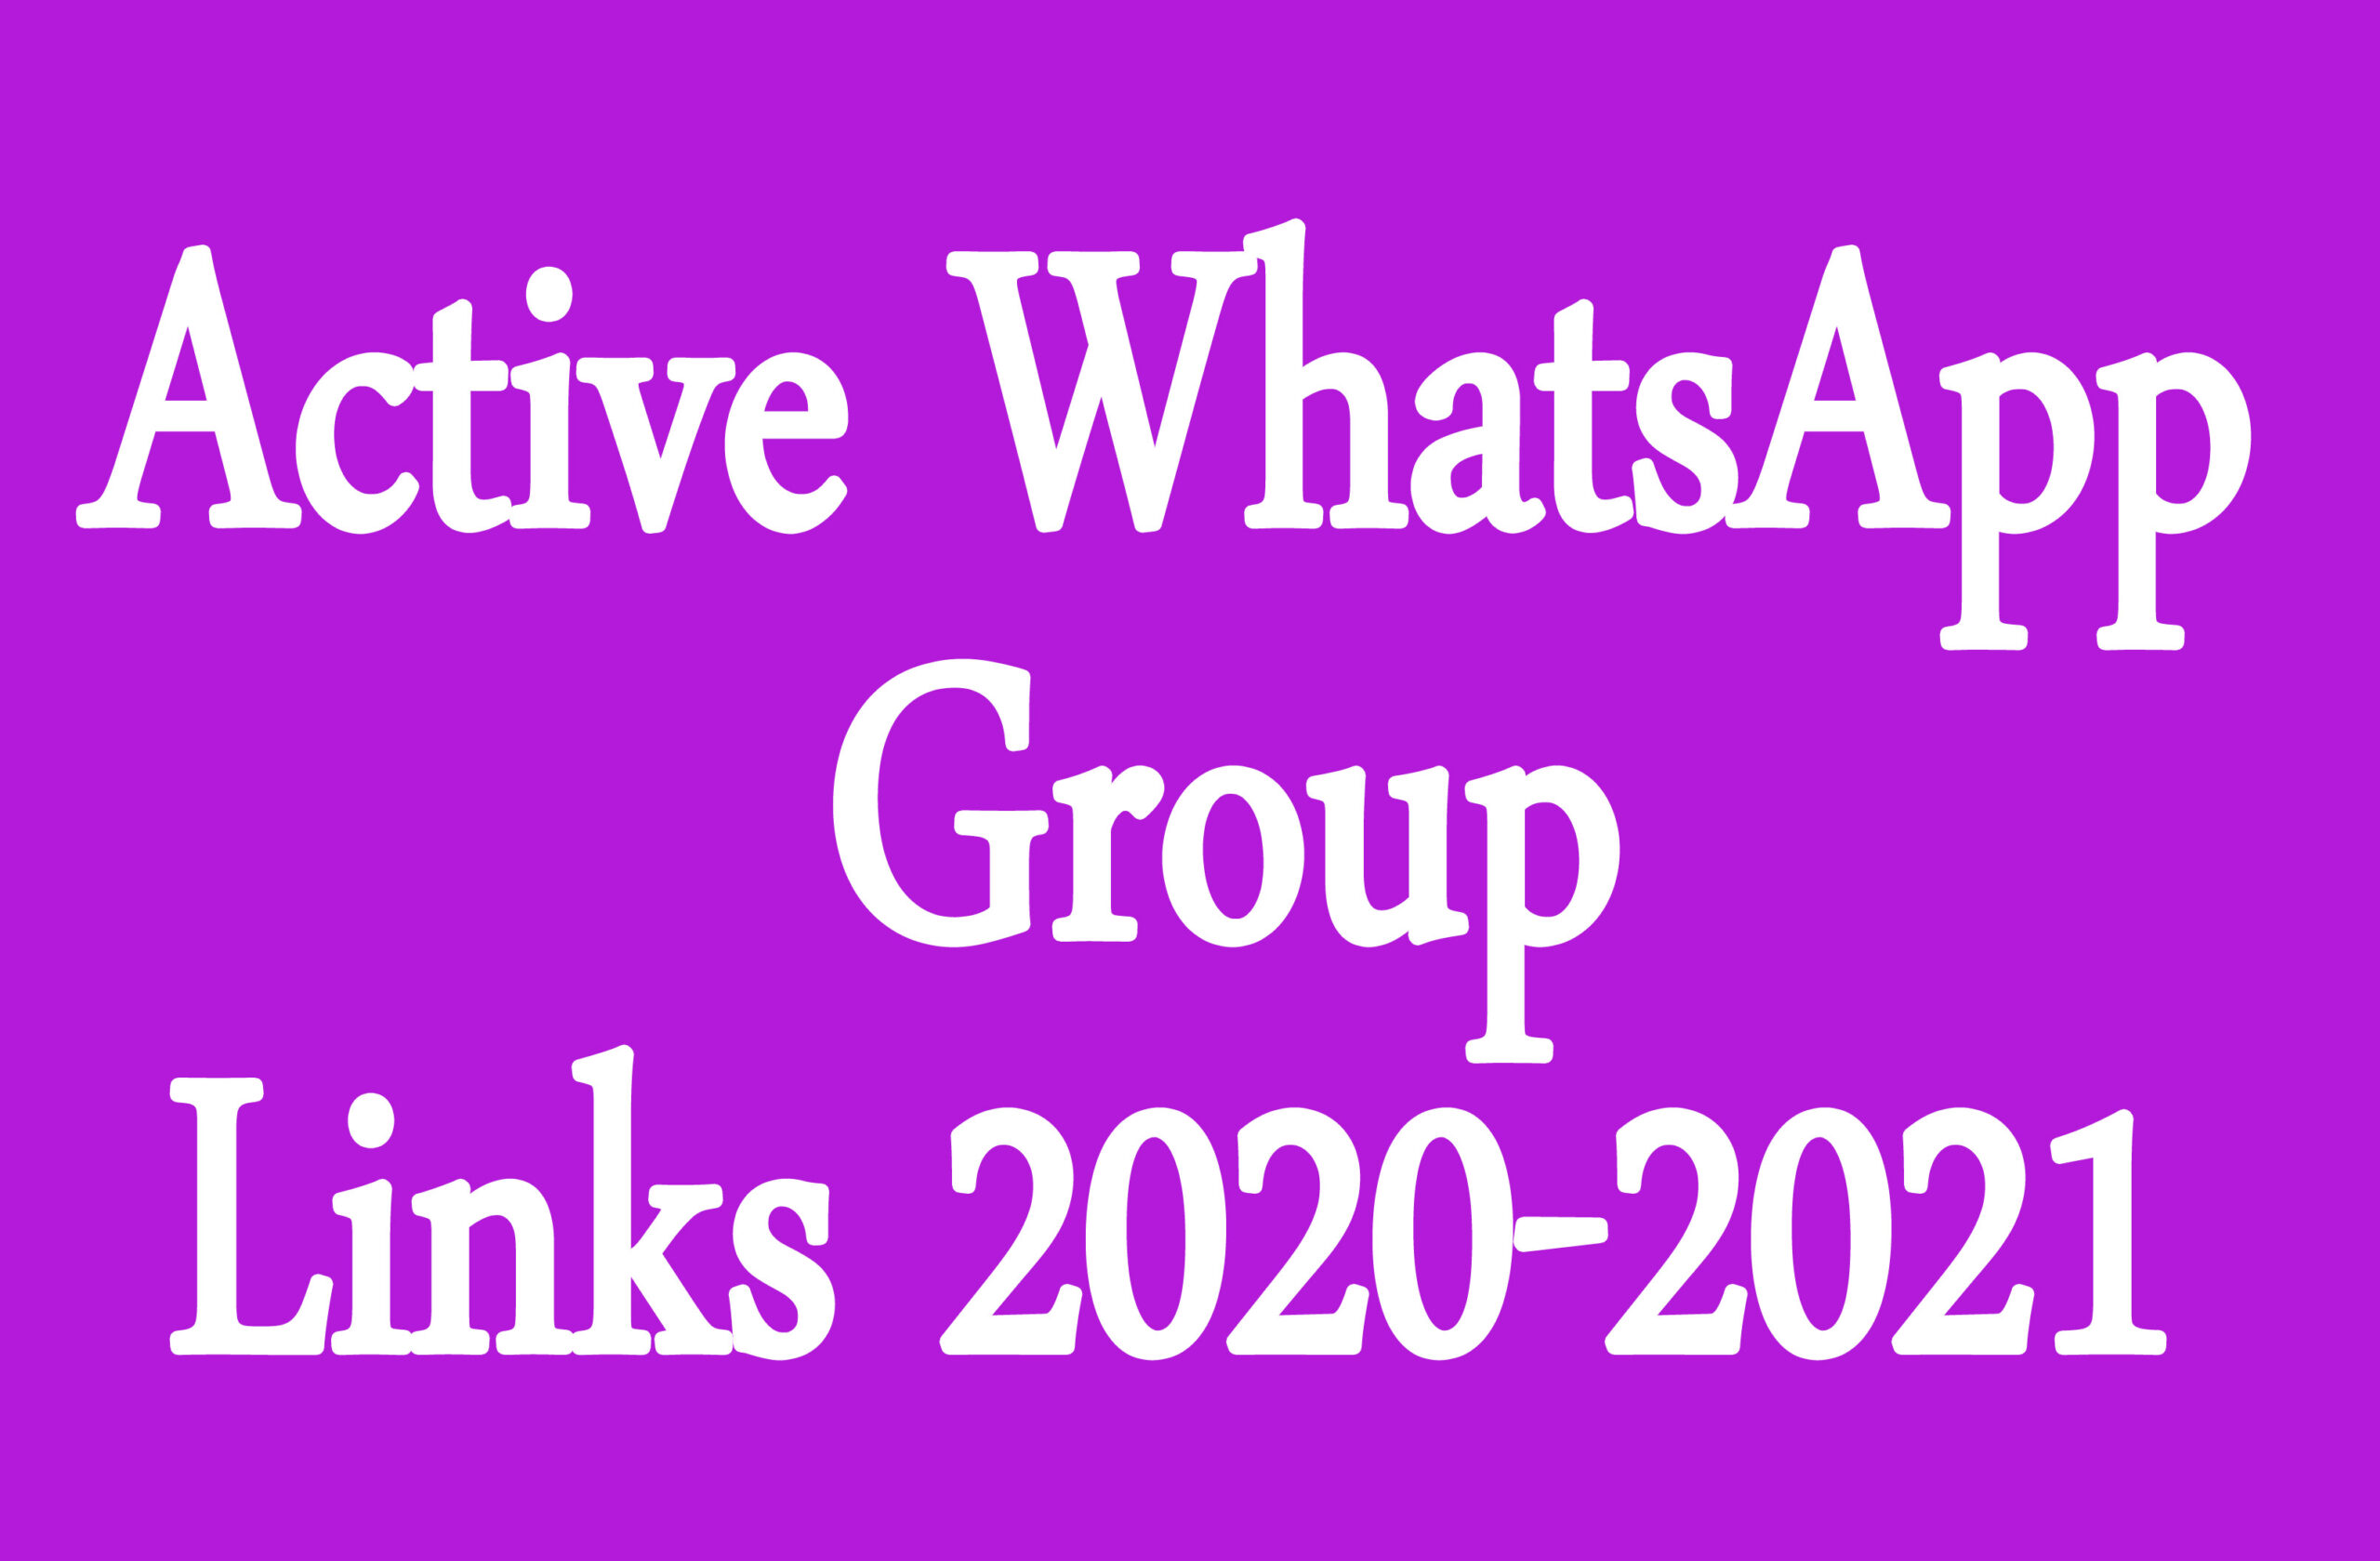 Active WhatsApp Group Links 2020-2021